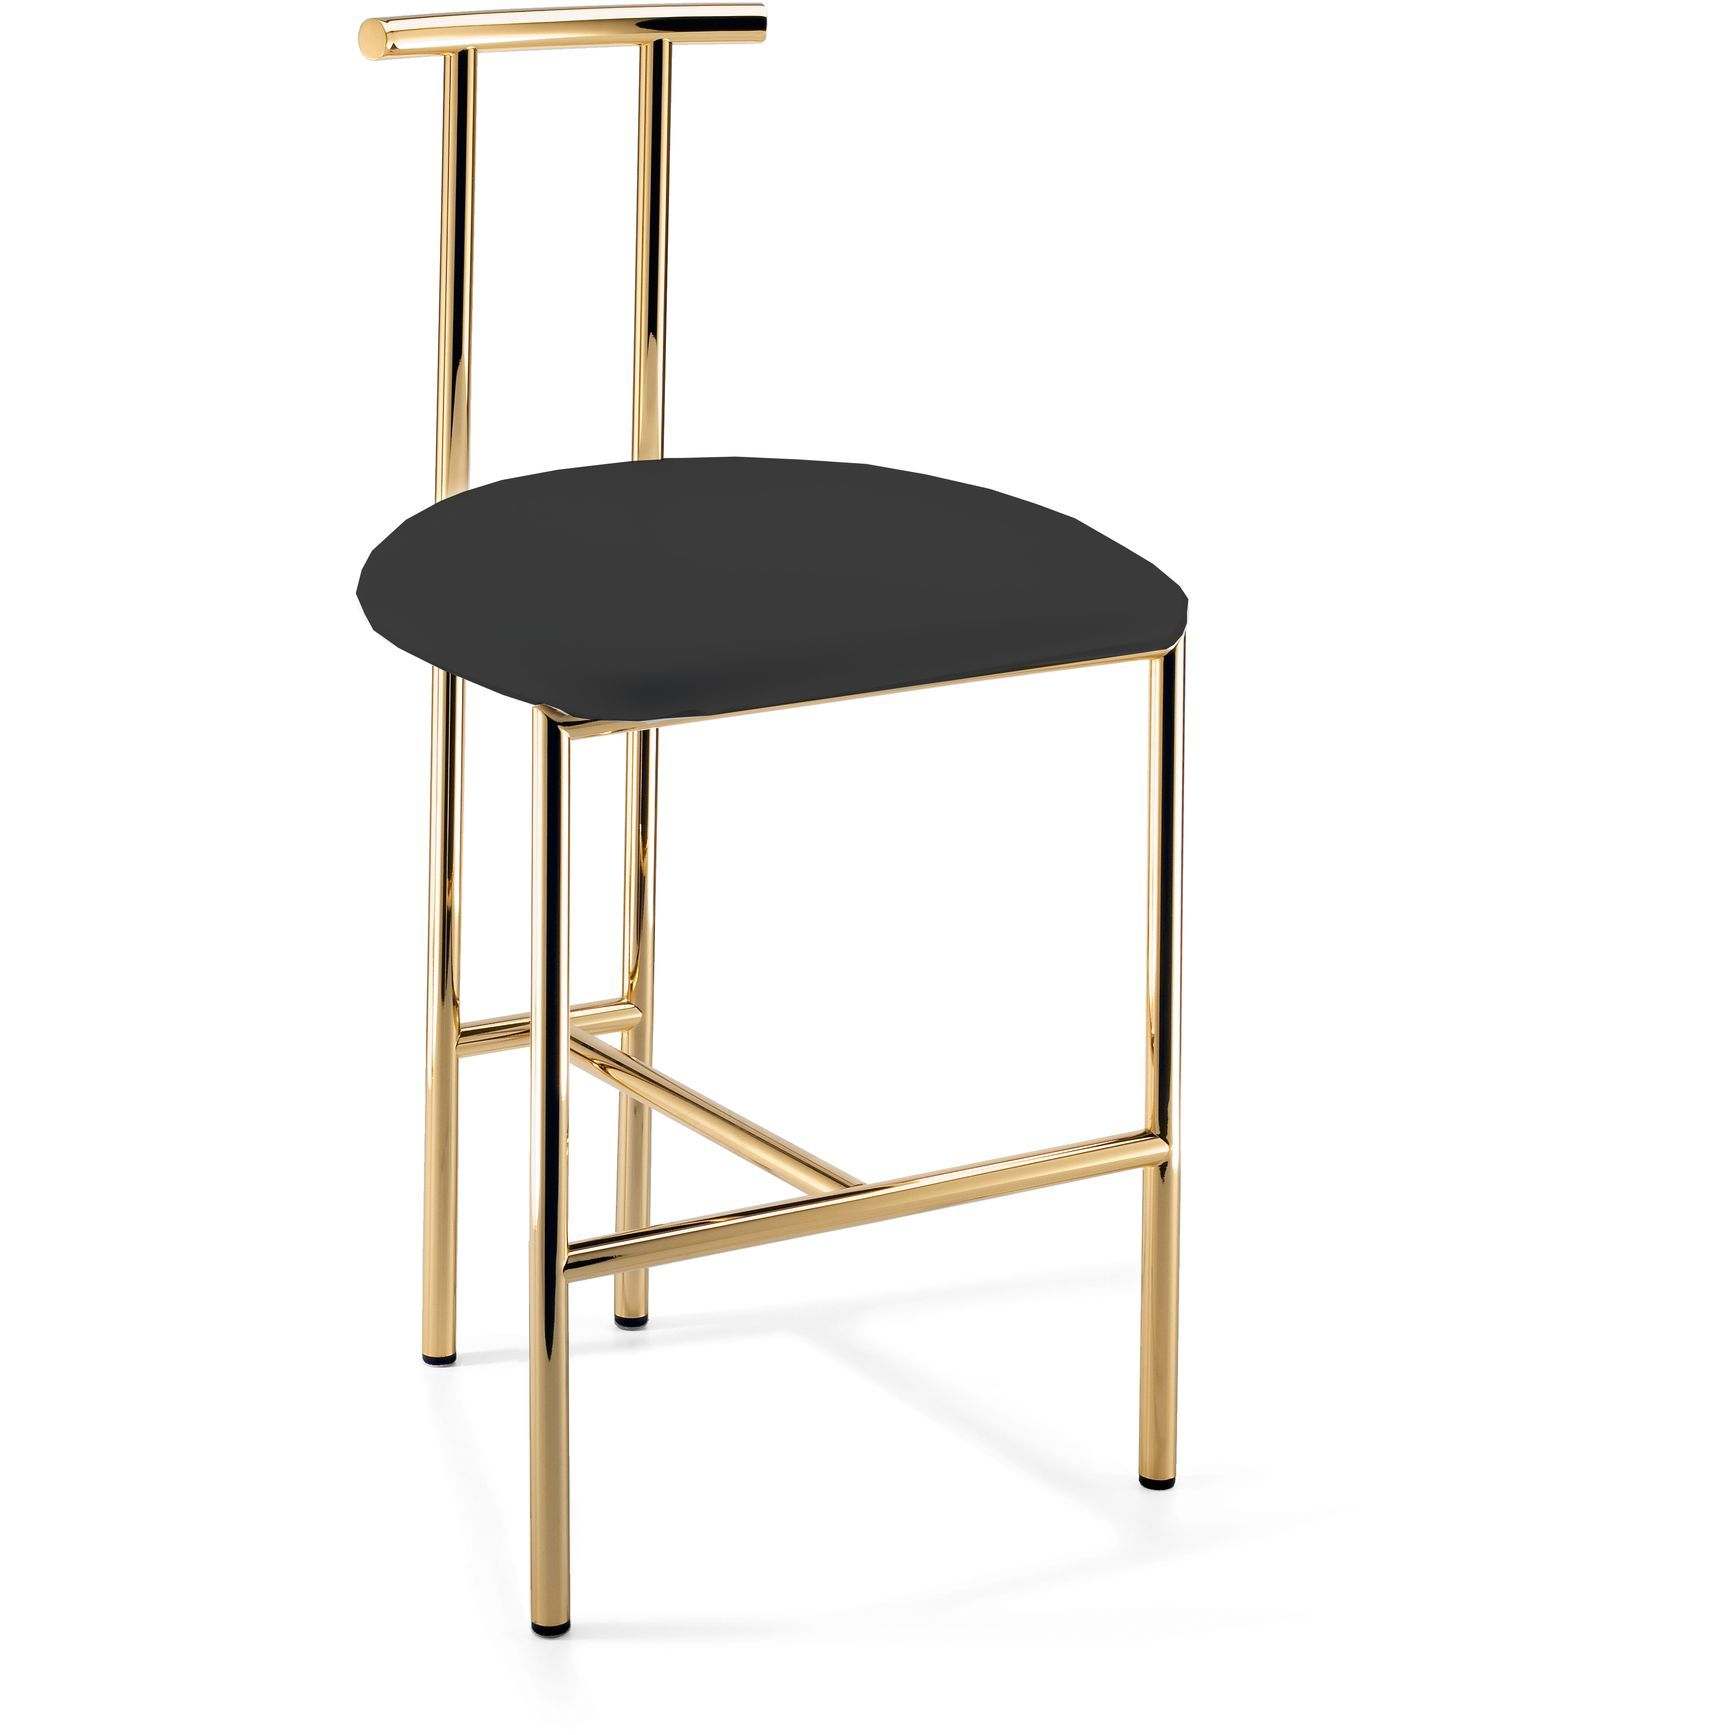 Wondrous Dwba Vanity Bar Stool Bench With Brass Metal Legs Back Short Links Chair Design For Home Short Linksinfo